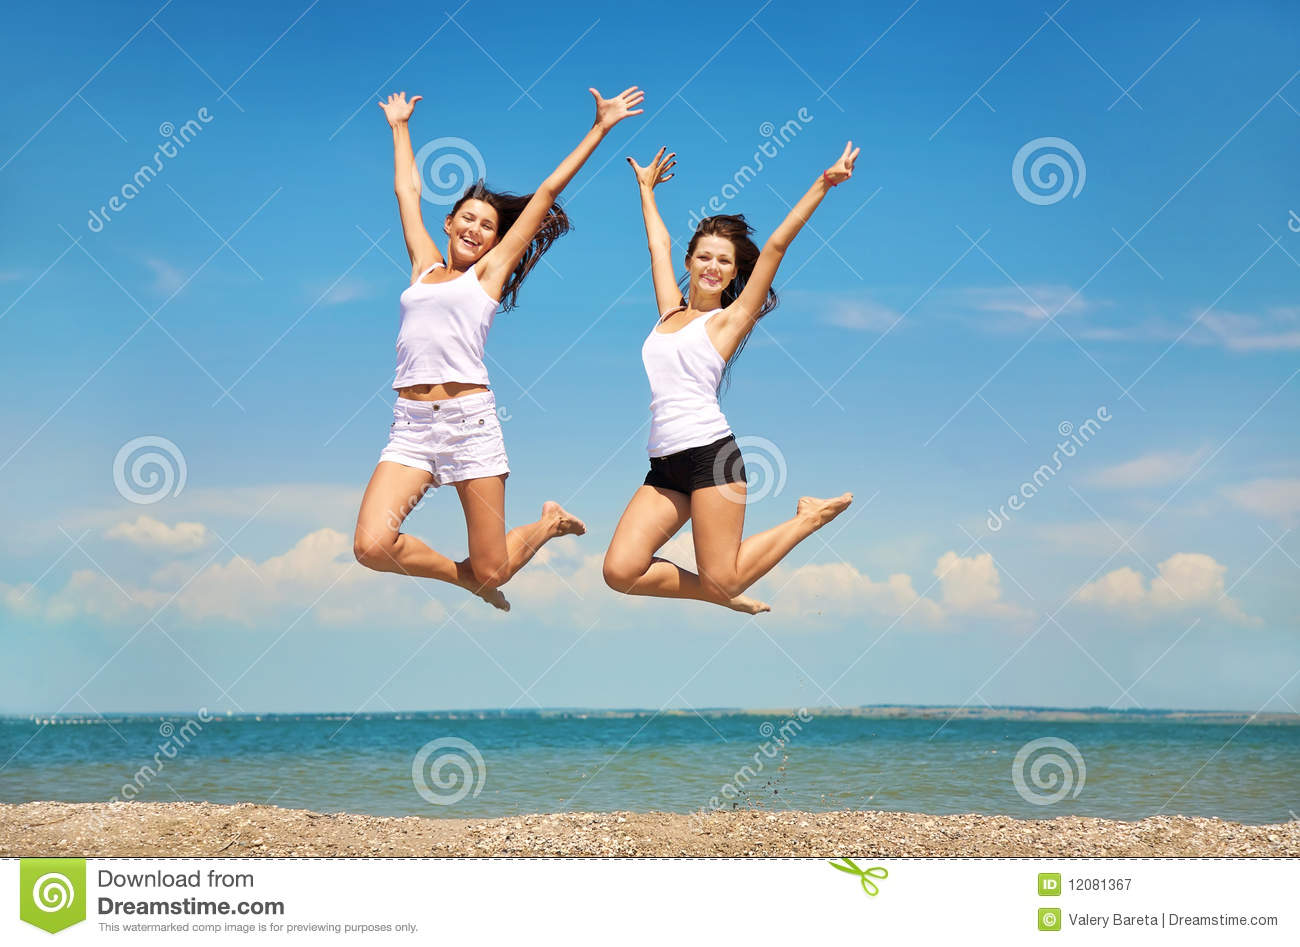 36d3c8b3a Beach stock image. Image of empty, ecstatic, active, human - 12081367